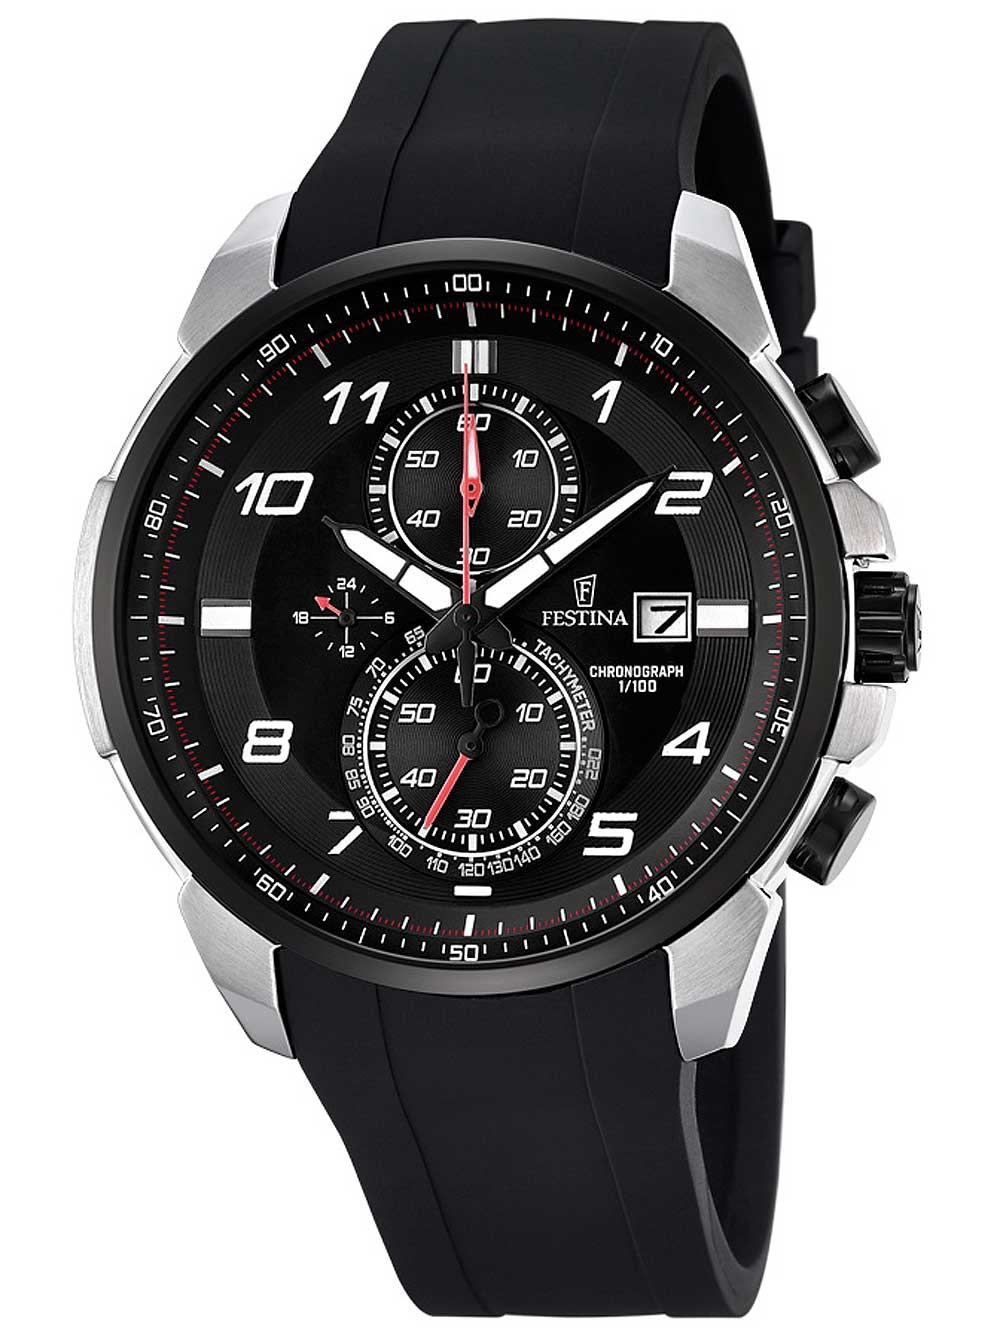 watches chrono12 festina f6841 4 chronograph herren. Black Bedroom Furniture Sets. Home Design Ideas